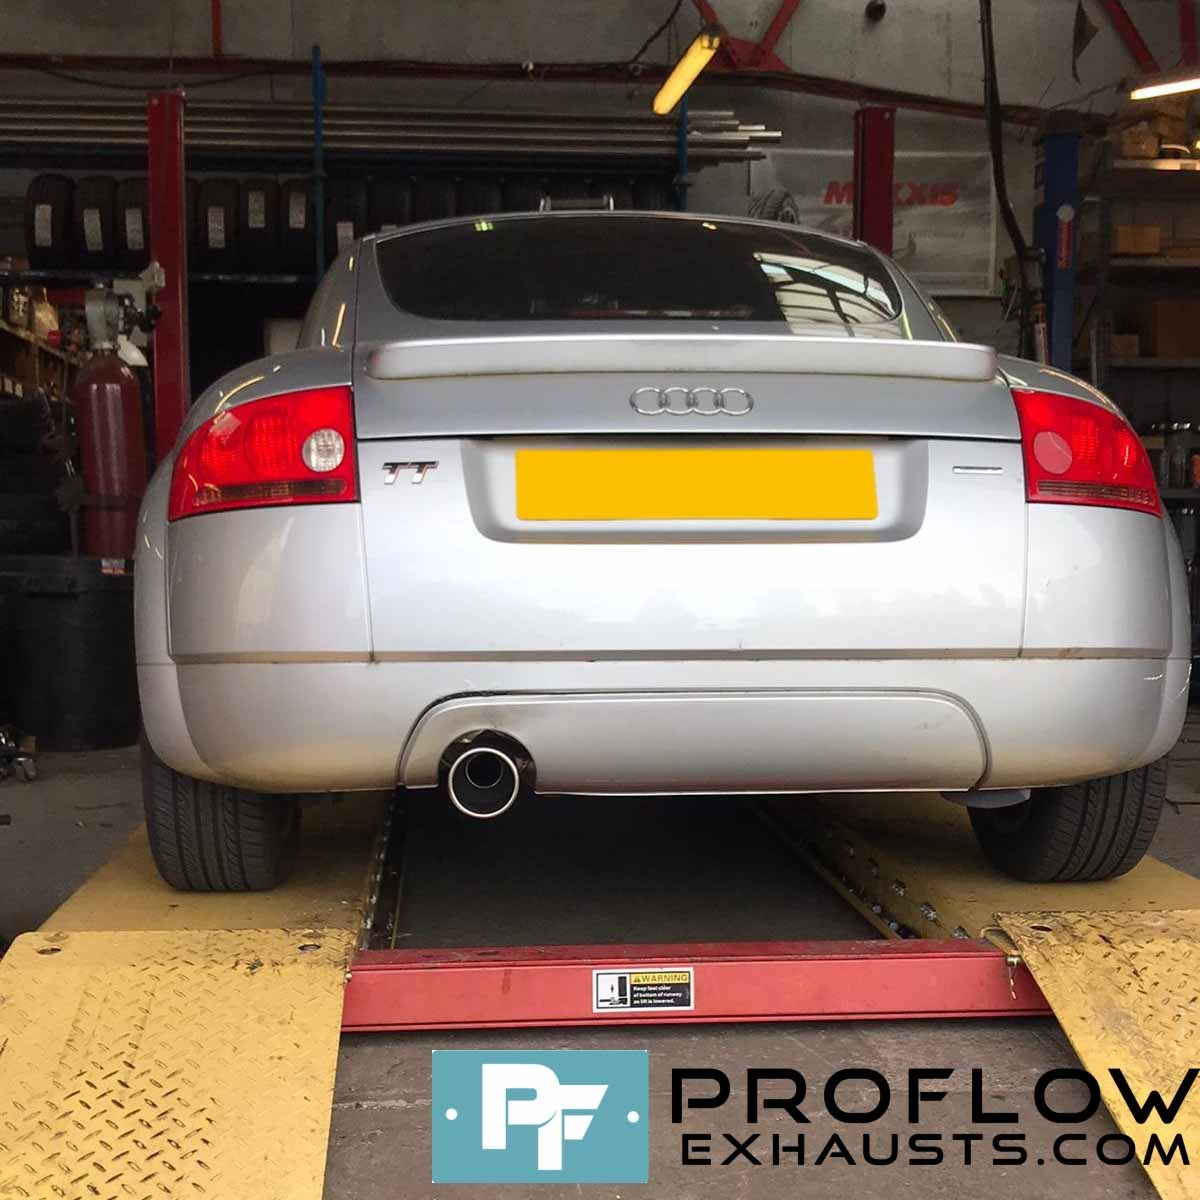 Proflow Custom Exhaust Audi TT with TX074 Tailpipe Made From Stainless Steel